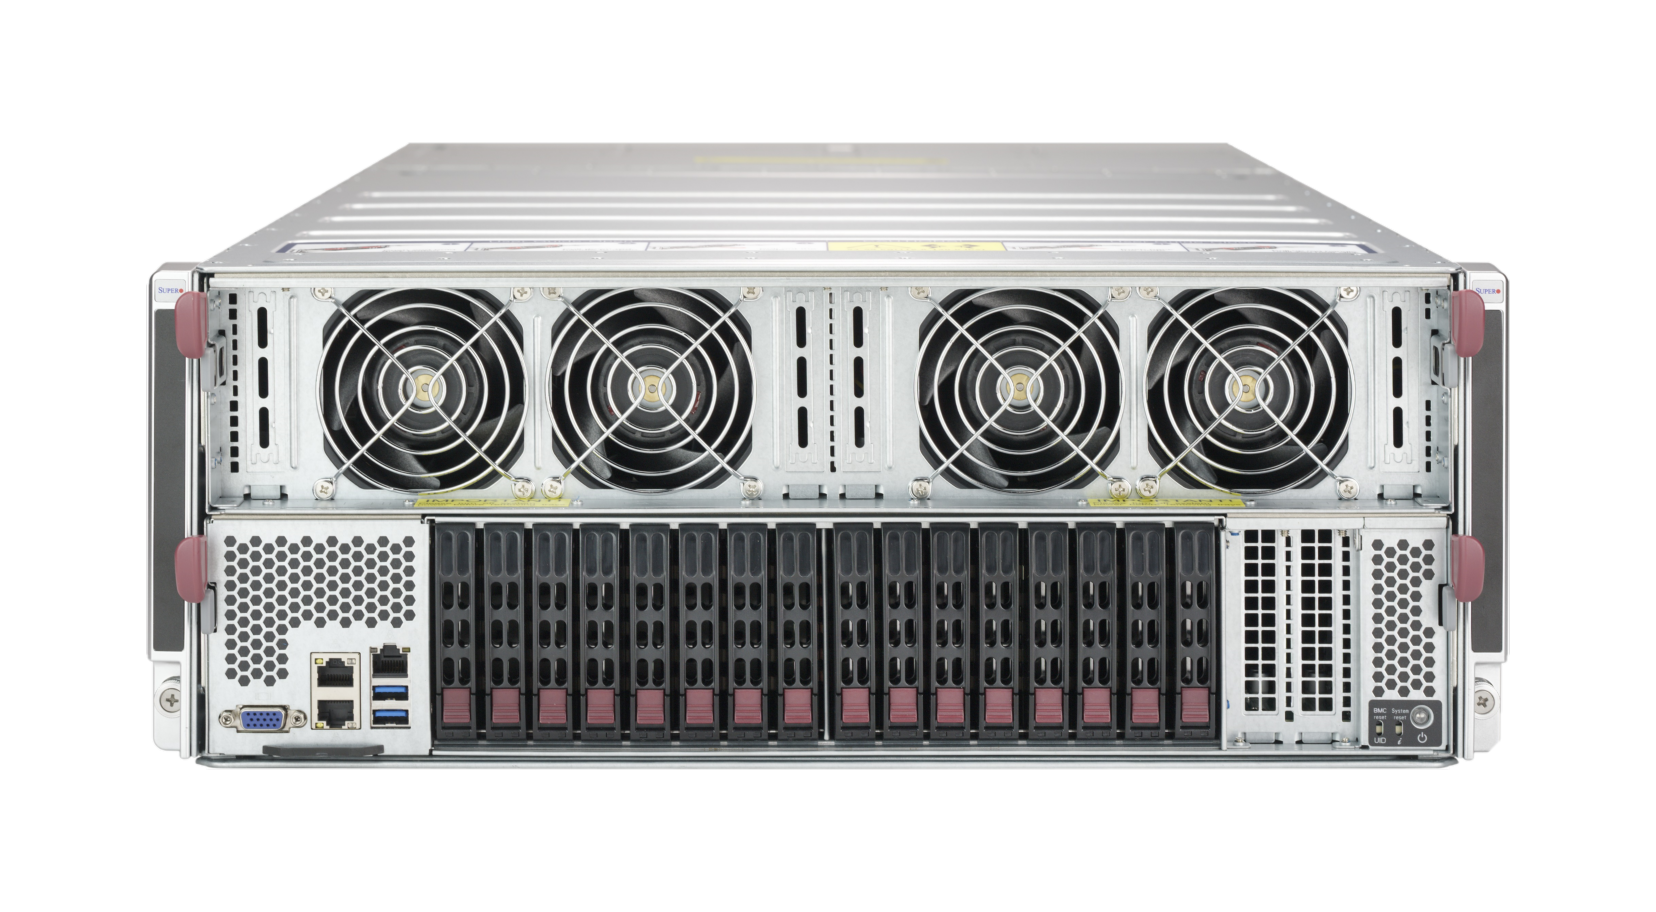 supermicro sys-4029gp-tvrt_front-transparent.png